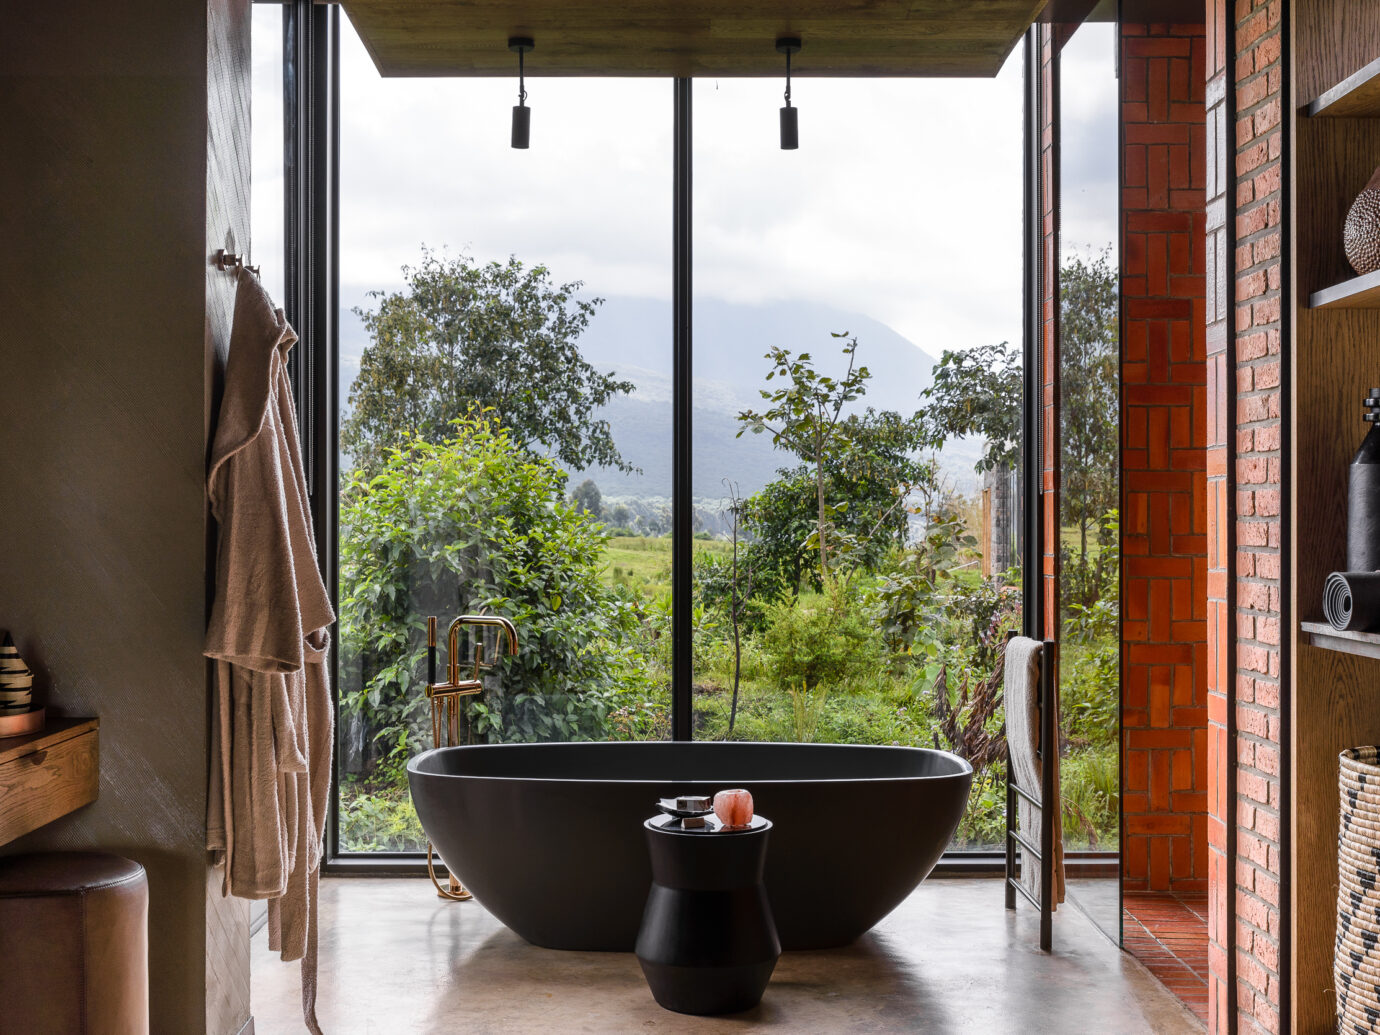 Kwitonda Lodge bath tub